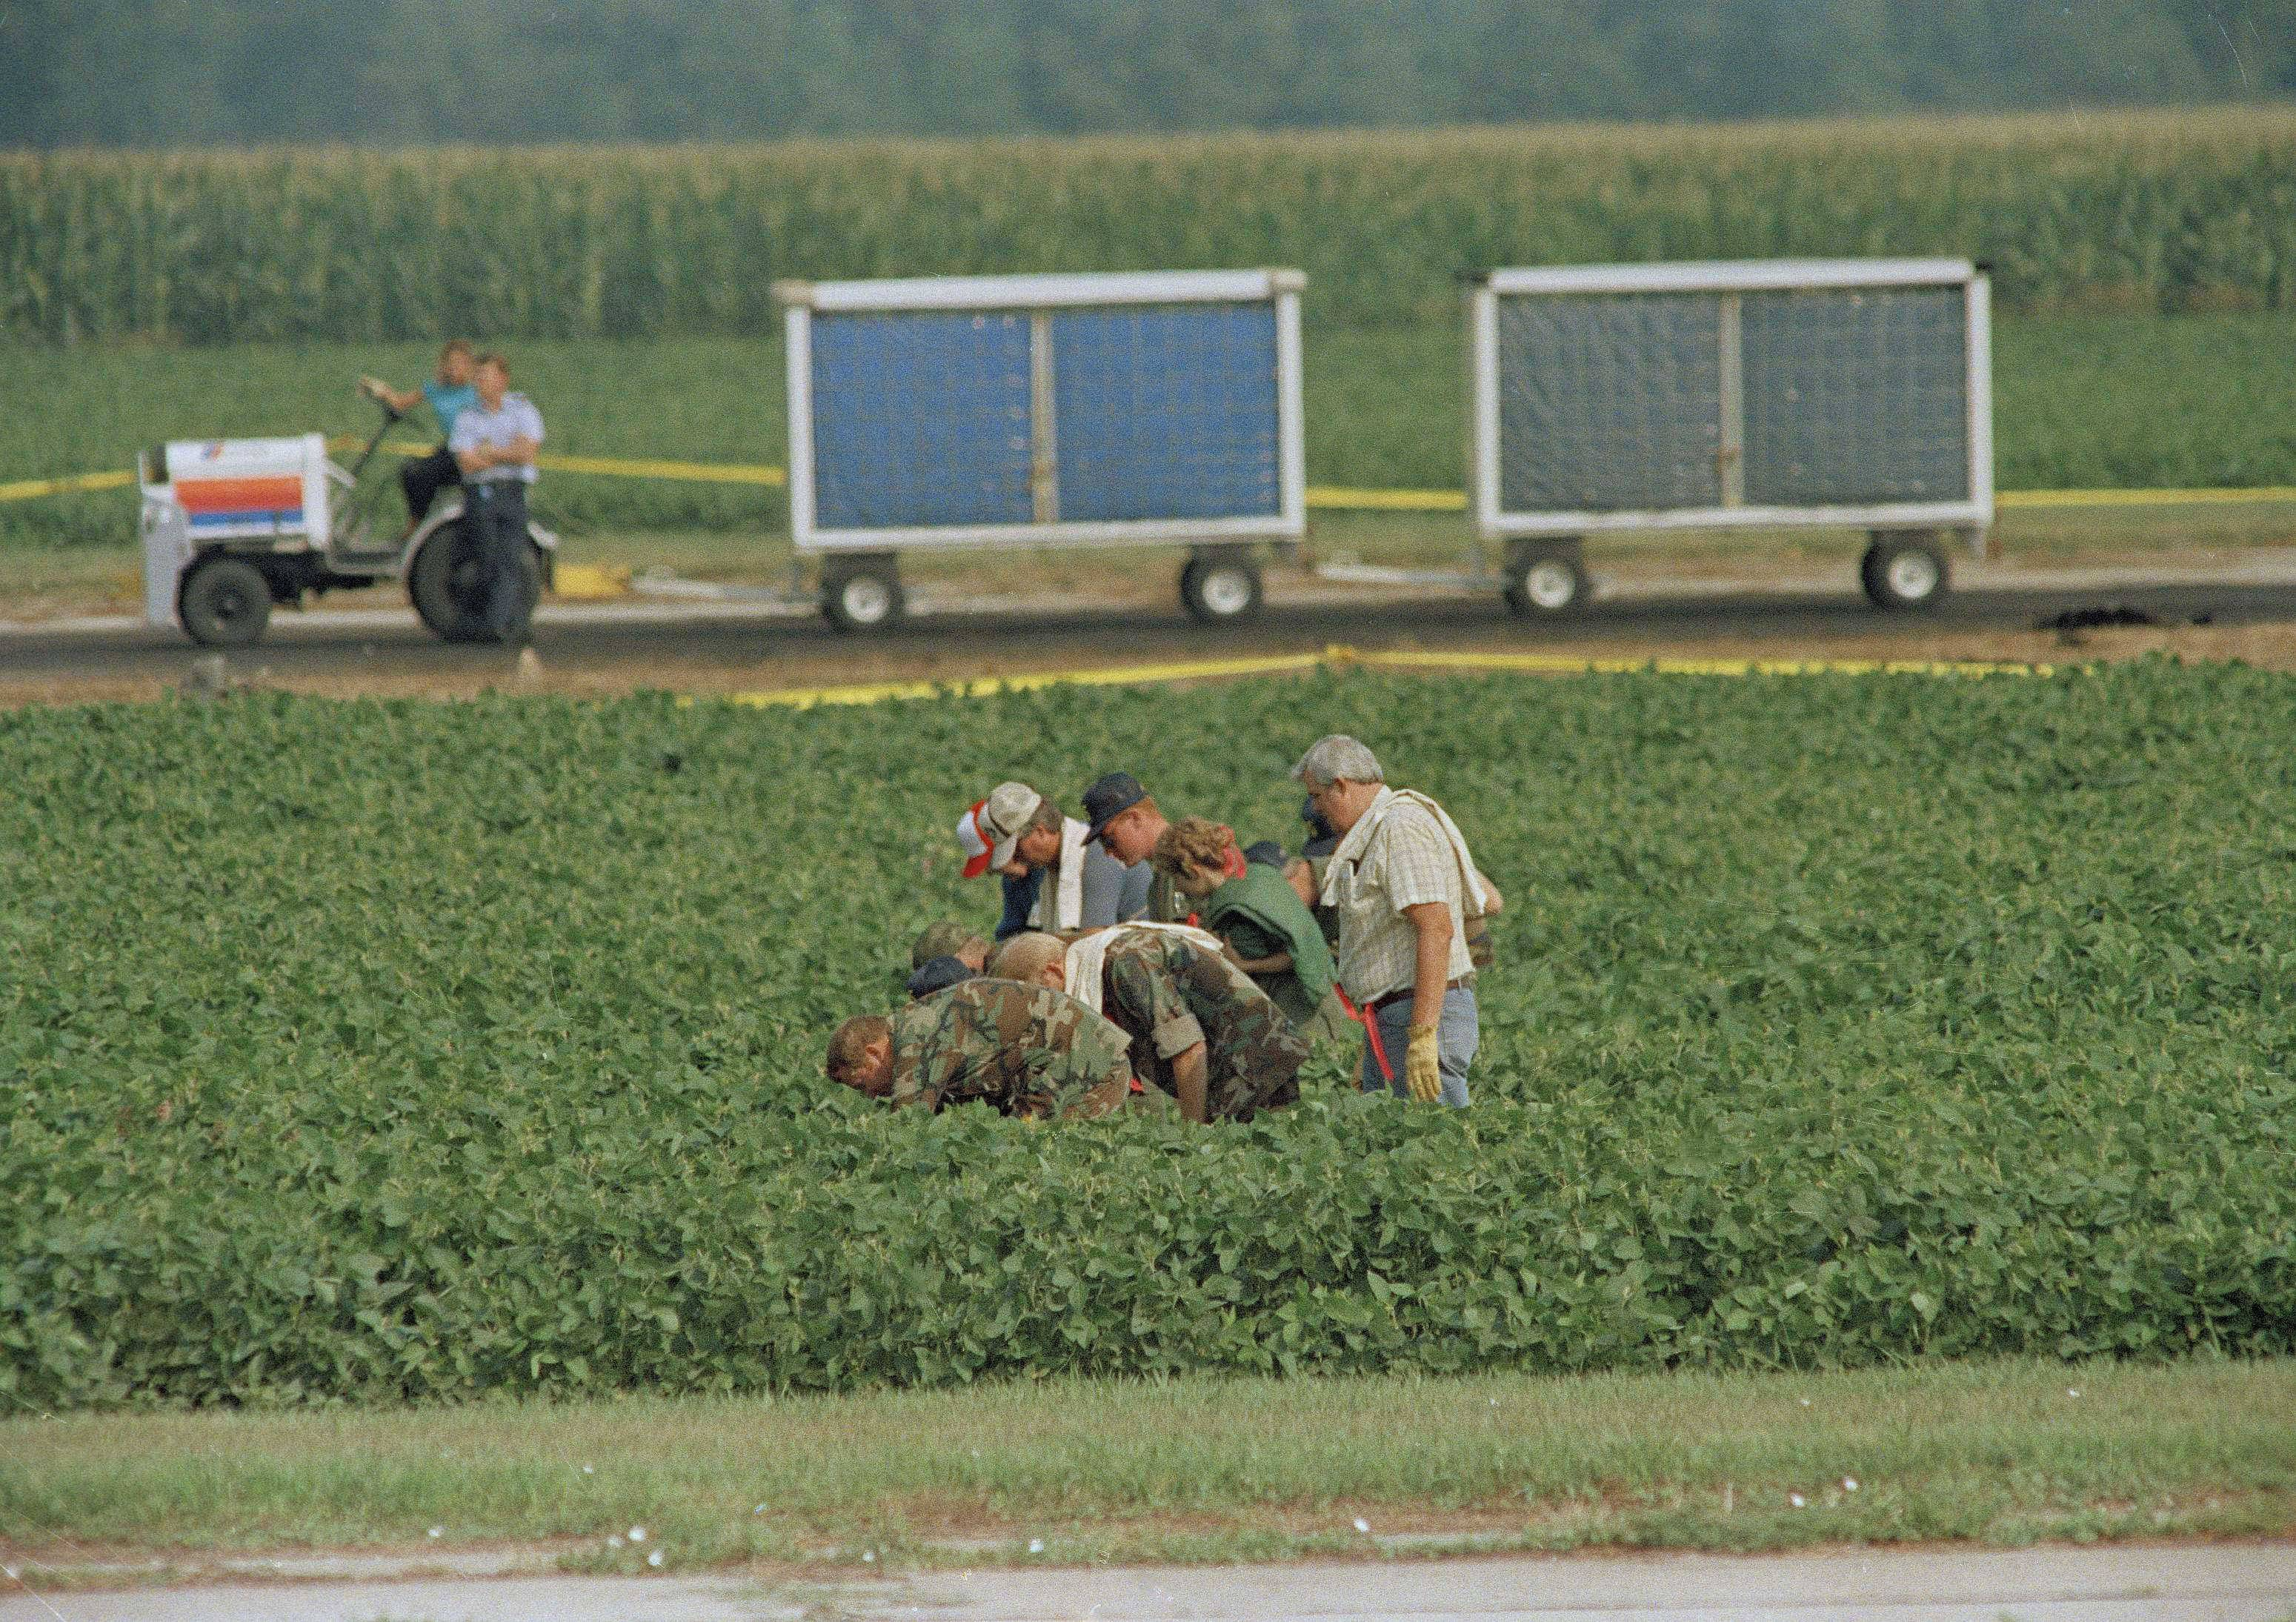 Searchers that include the Iowa Air National Guard in a bean field, July 21, 1989, bordering the runway where United Airlines 232 crash landed at Sioux City, Iowa.